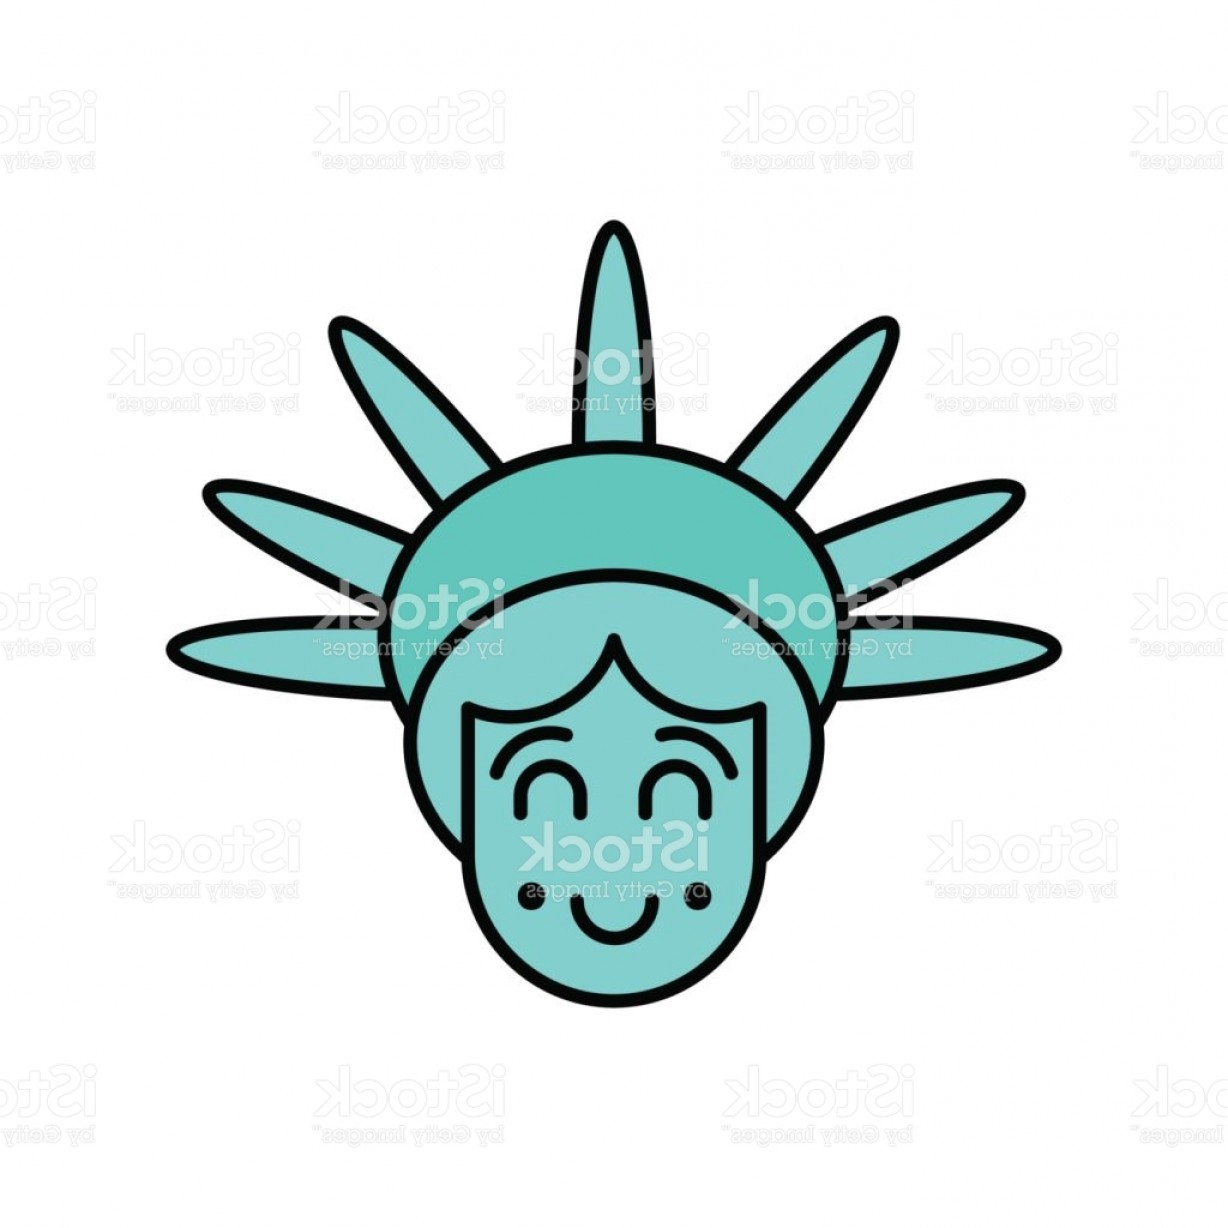 Statue Of Liberty Face Vector: Statue Of Liberty Face Emoji Sightseeing America Happy Head Of Sculpture Of United Gm